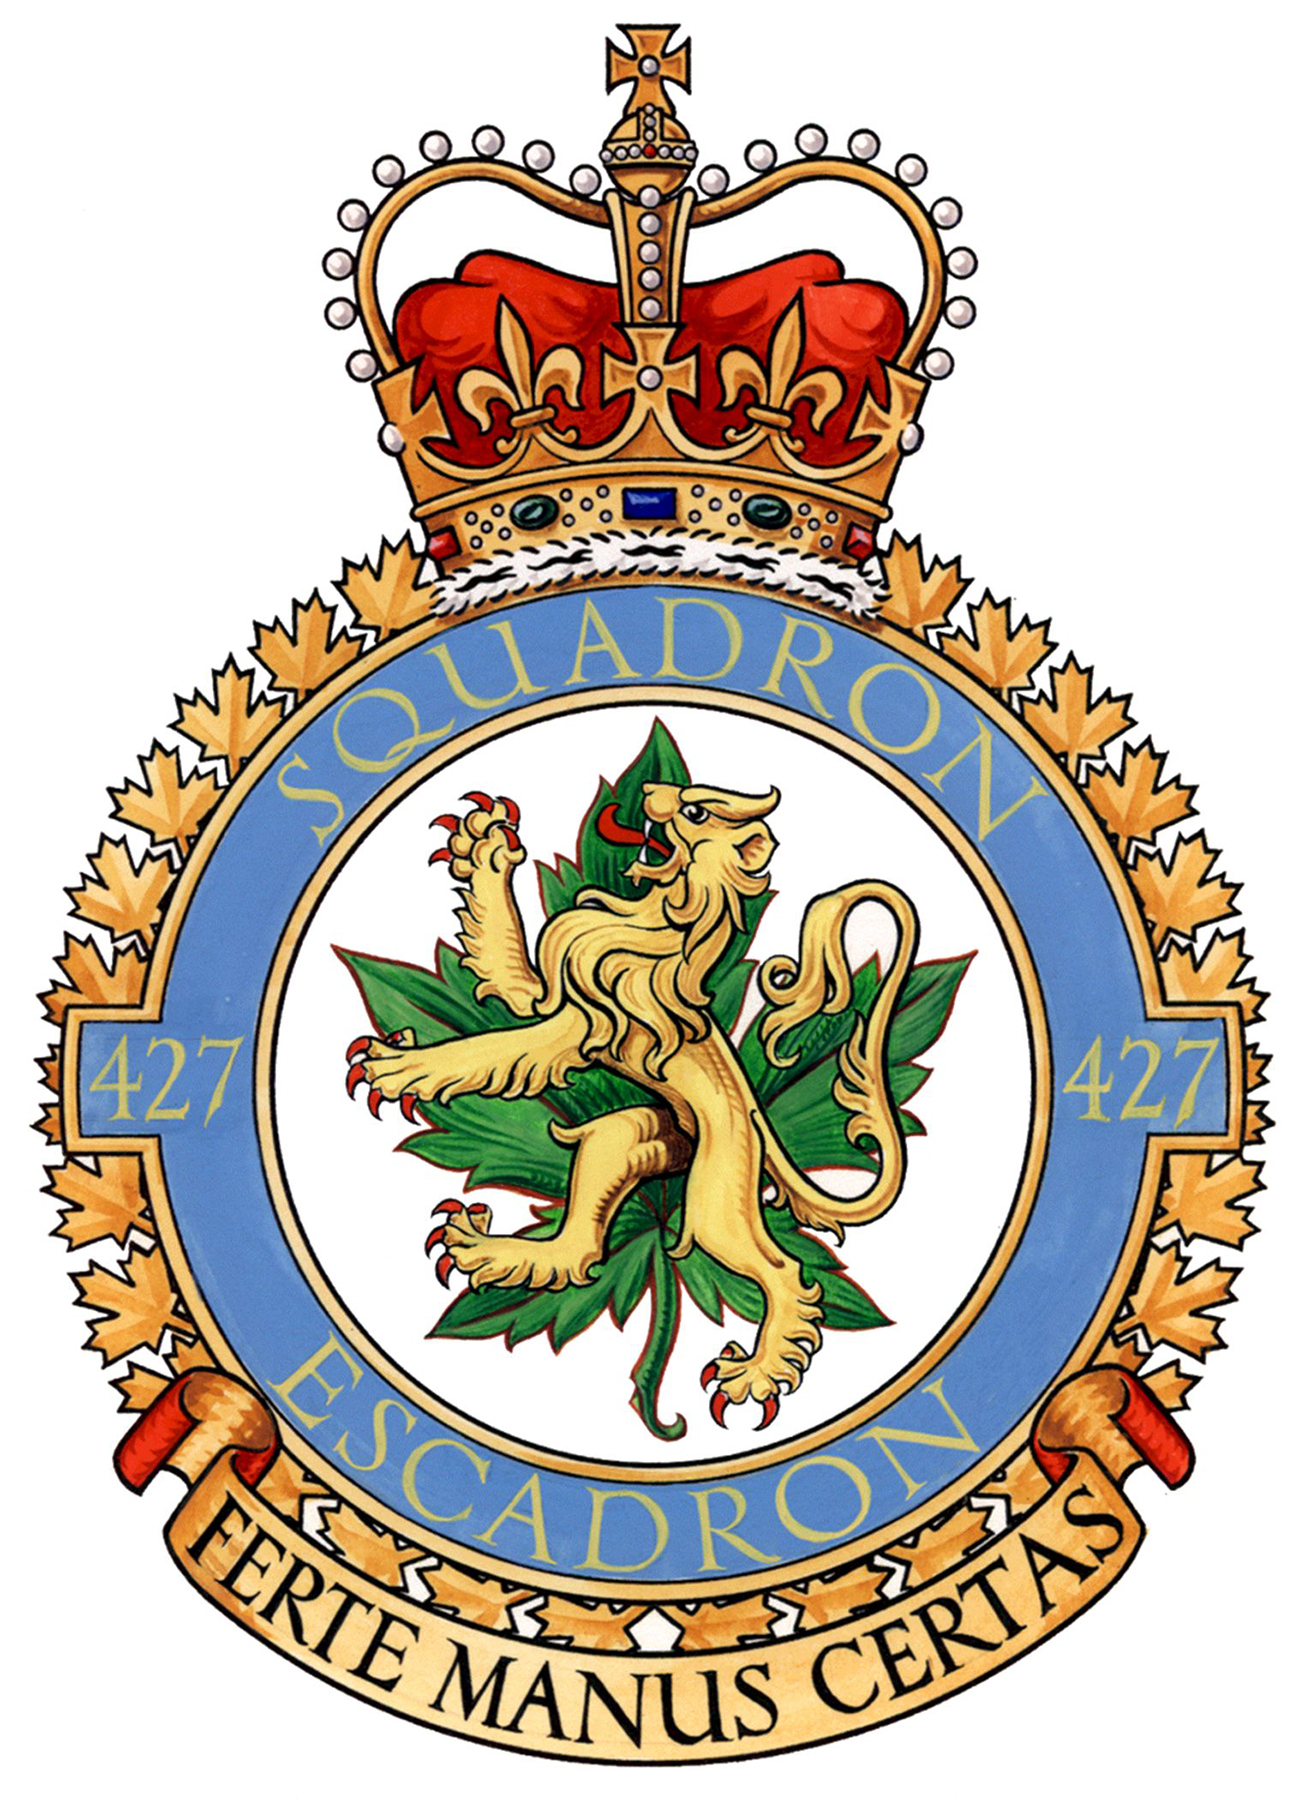 "427 Squadron's badge shows a lion standing upright with its forepaws raised in front of a green maple leaf. The combination of a lion representing the United Kingdom and a maple leaf representing Canada indicates the formation of the squadron in England. The squadron's motto is ""Ferte manus certas"" – ""Strike with a sure hand"". IMAGE: DND"